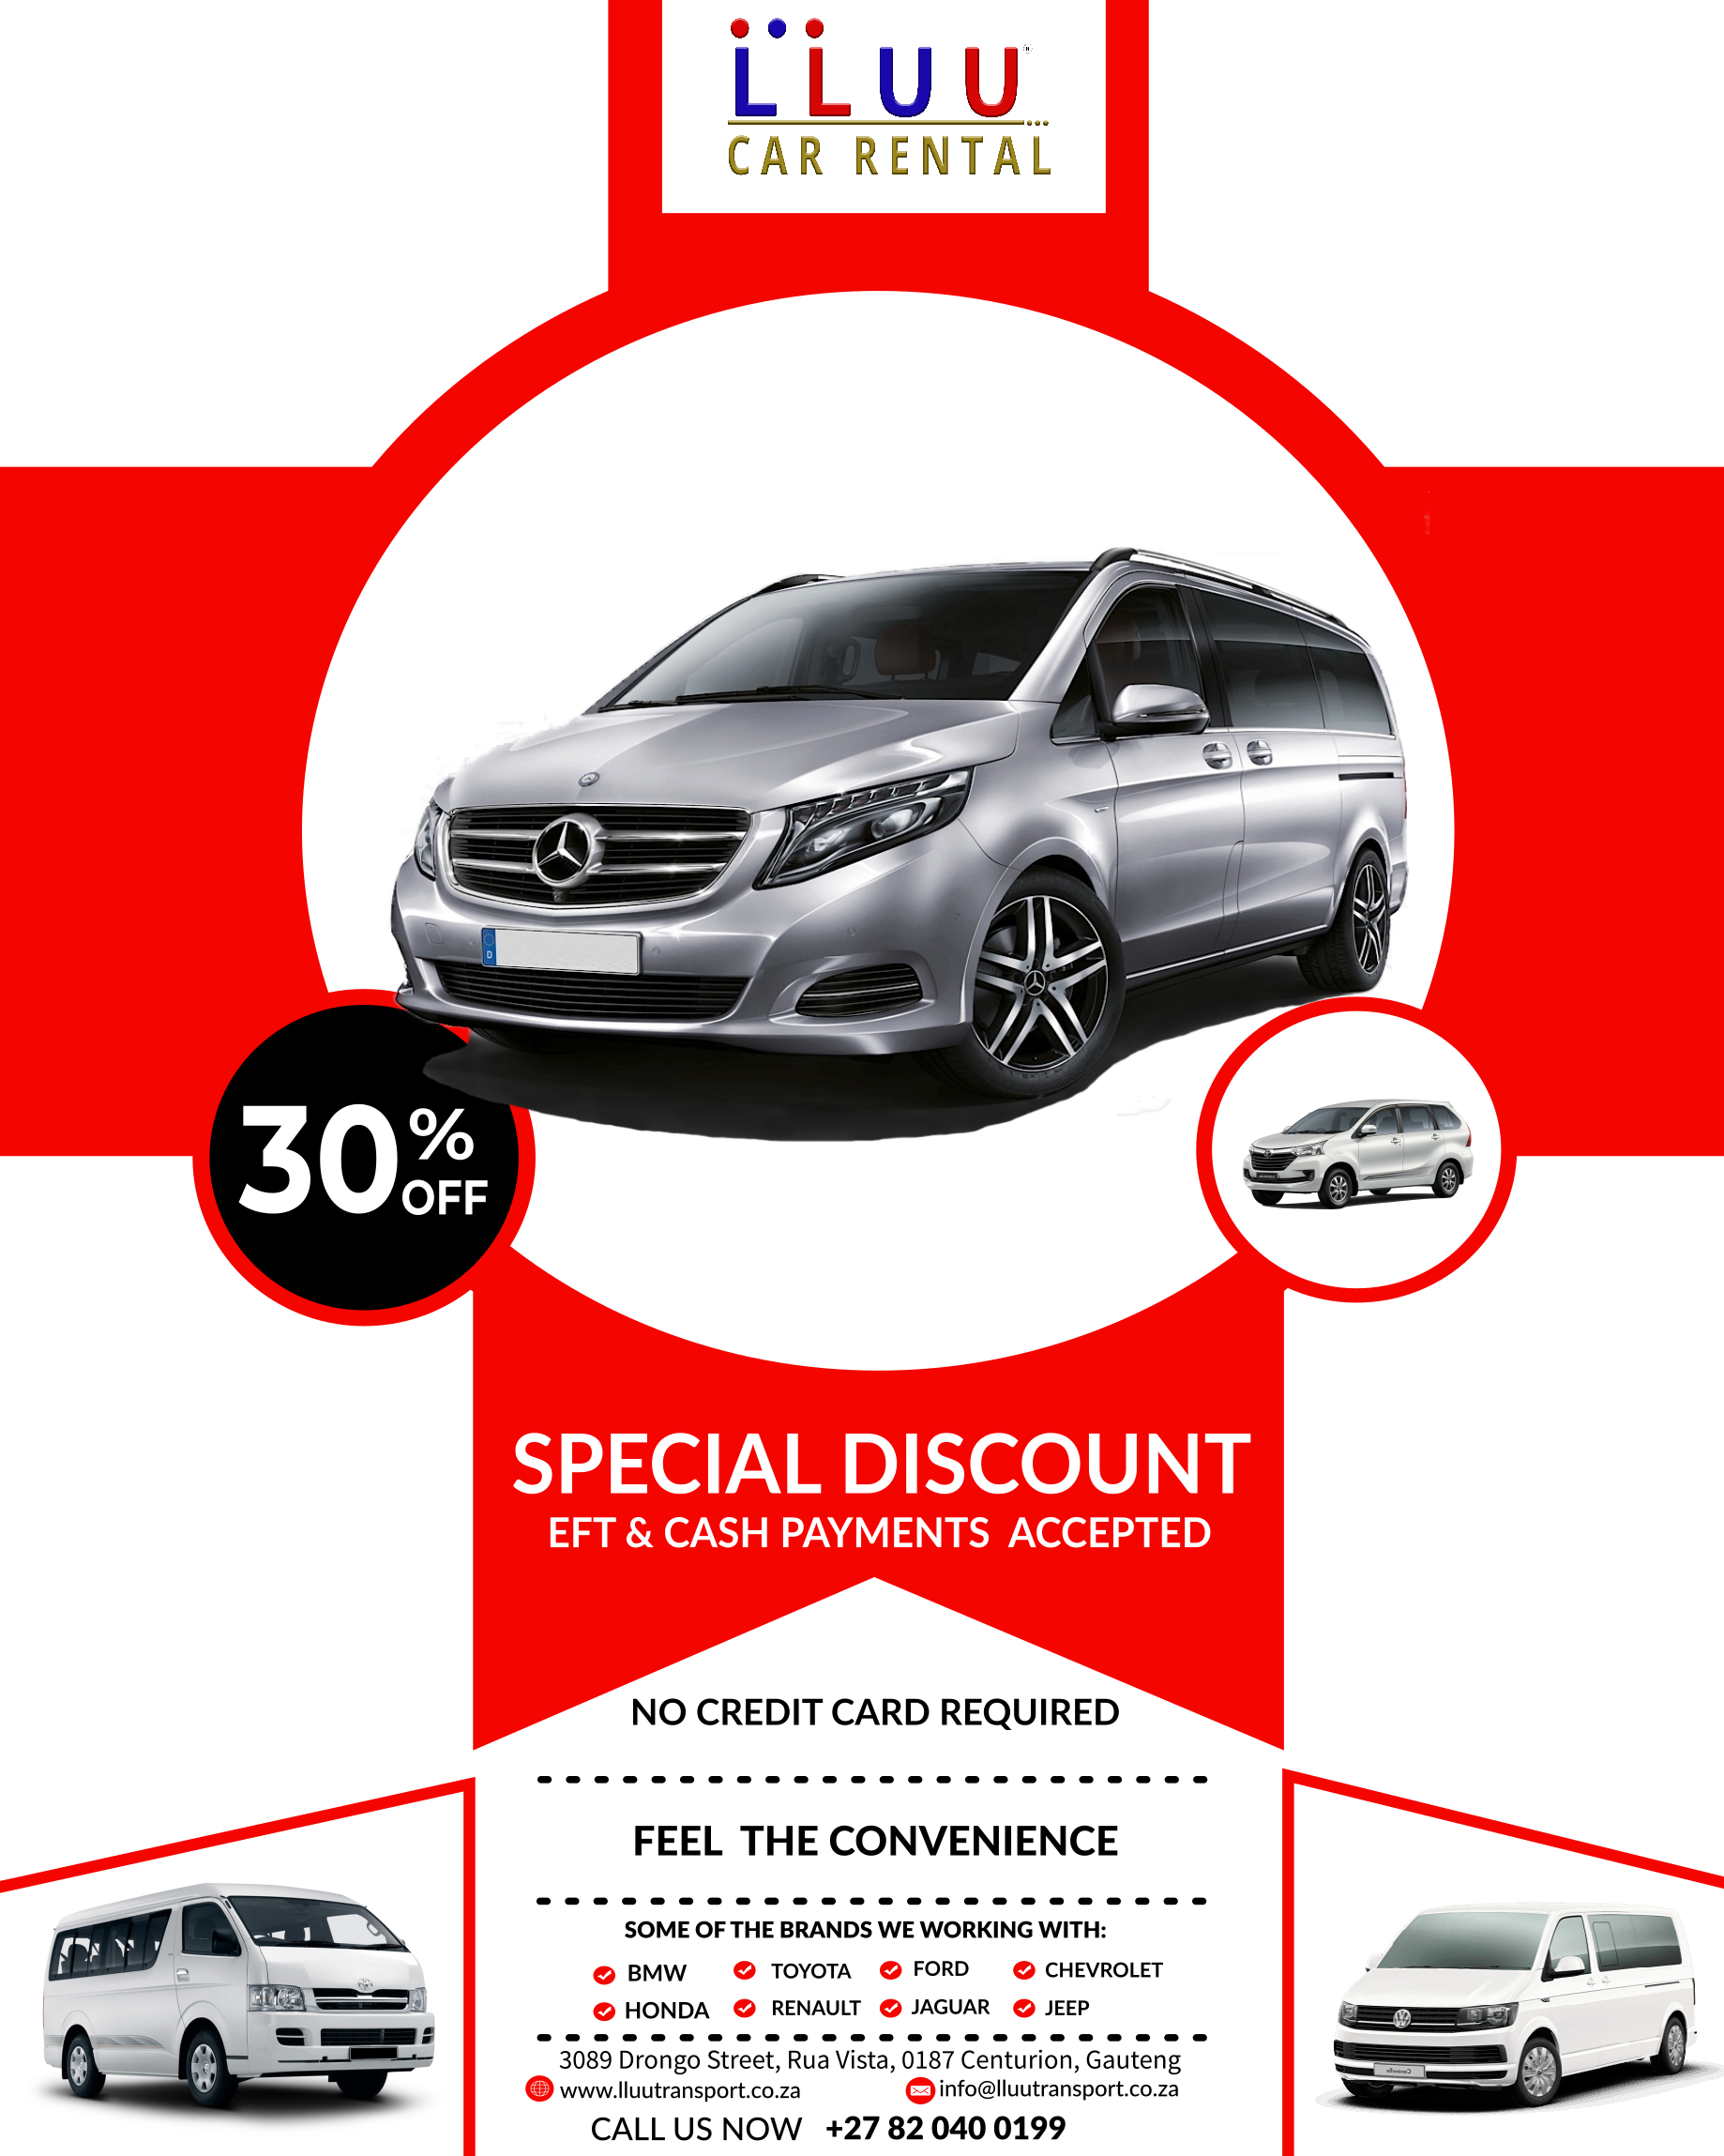 30 Off Discount Sounds Great What Are You Waiting For Call Us Now 27 82 040 0199 To Rent Staff Transport At An Affordabl Ford Chevrolet Car Hire Car Rental